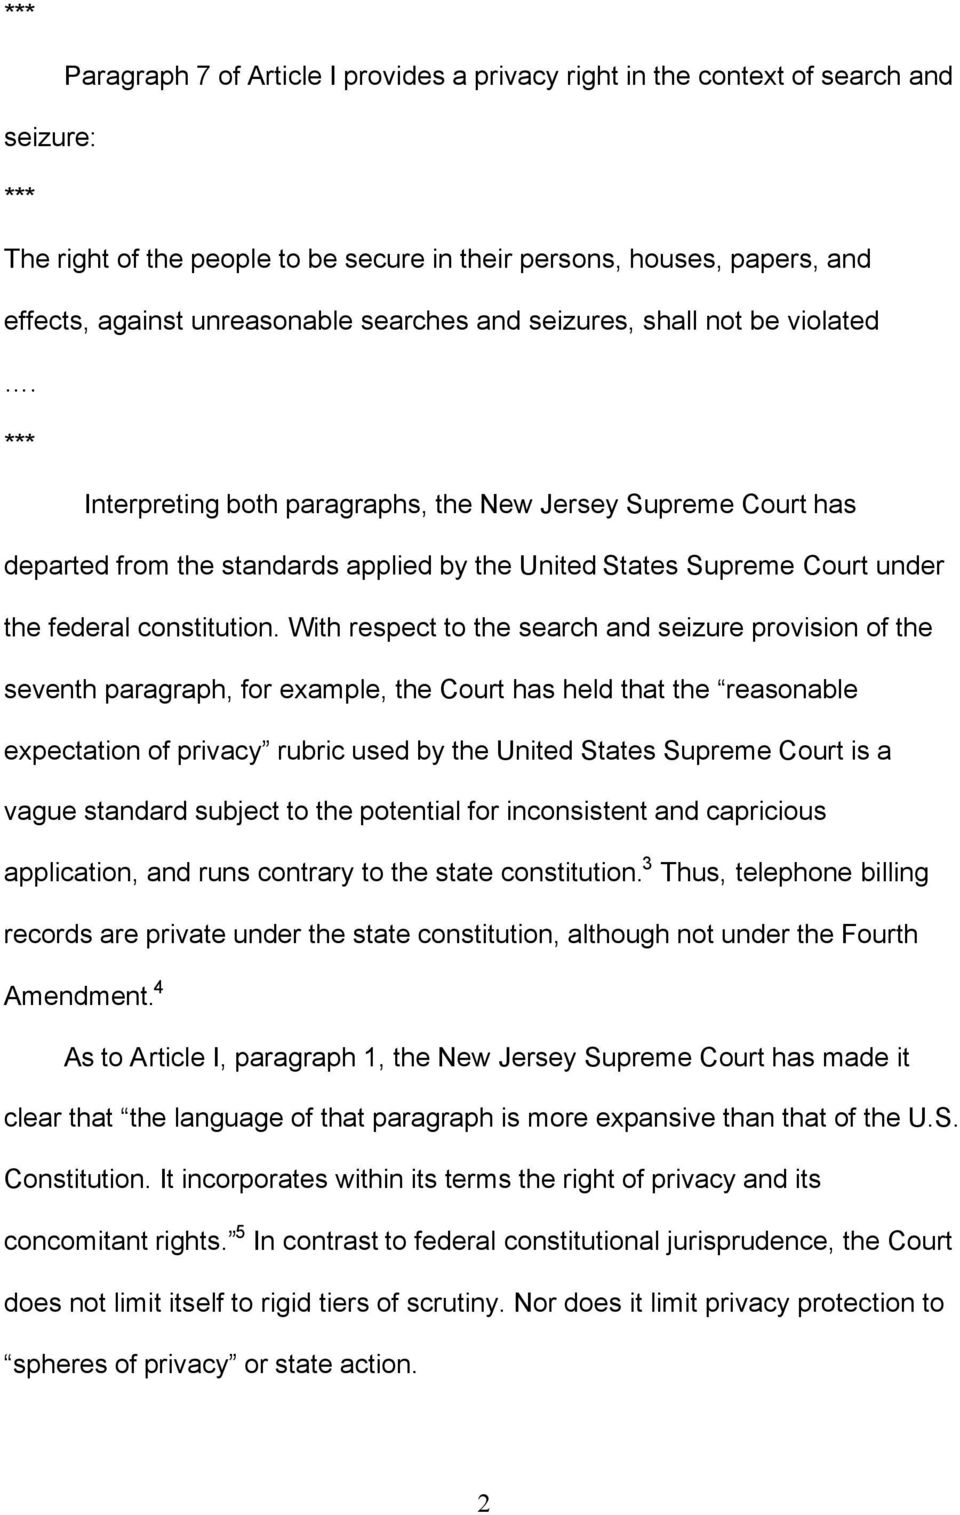 *** Interpreting both paragraphs, the New Jersey Supreme Court has departed from the standards applied by the United States Supreme Court under the federal constitution.